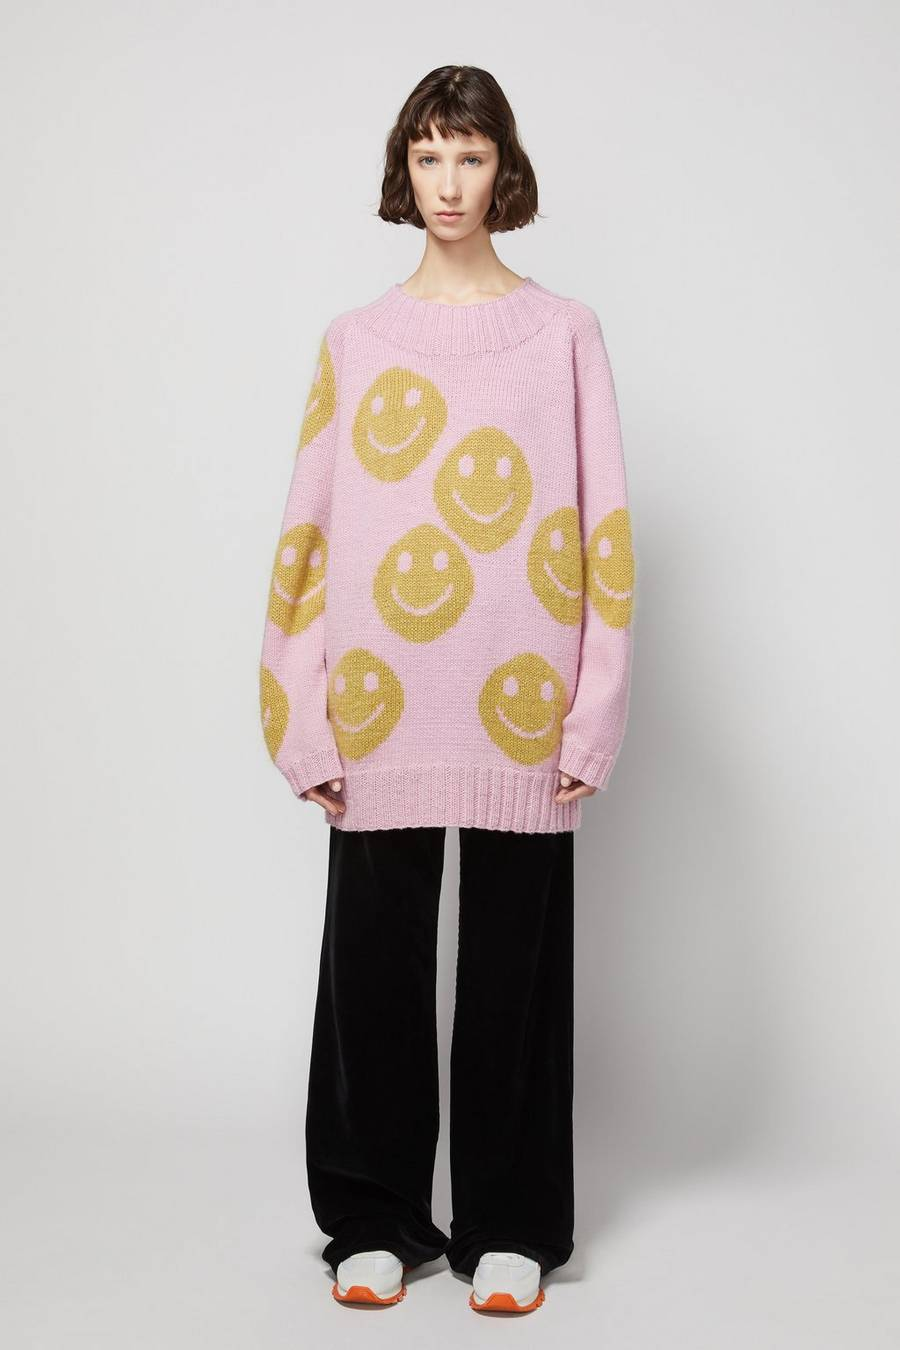 The Redux Sweater by Marc Jacobs